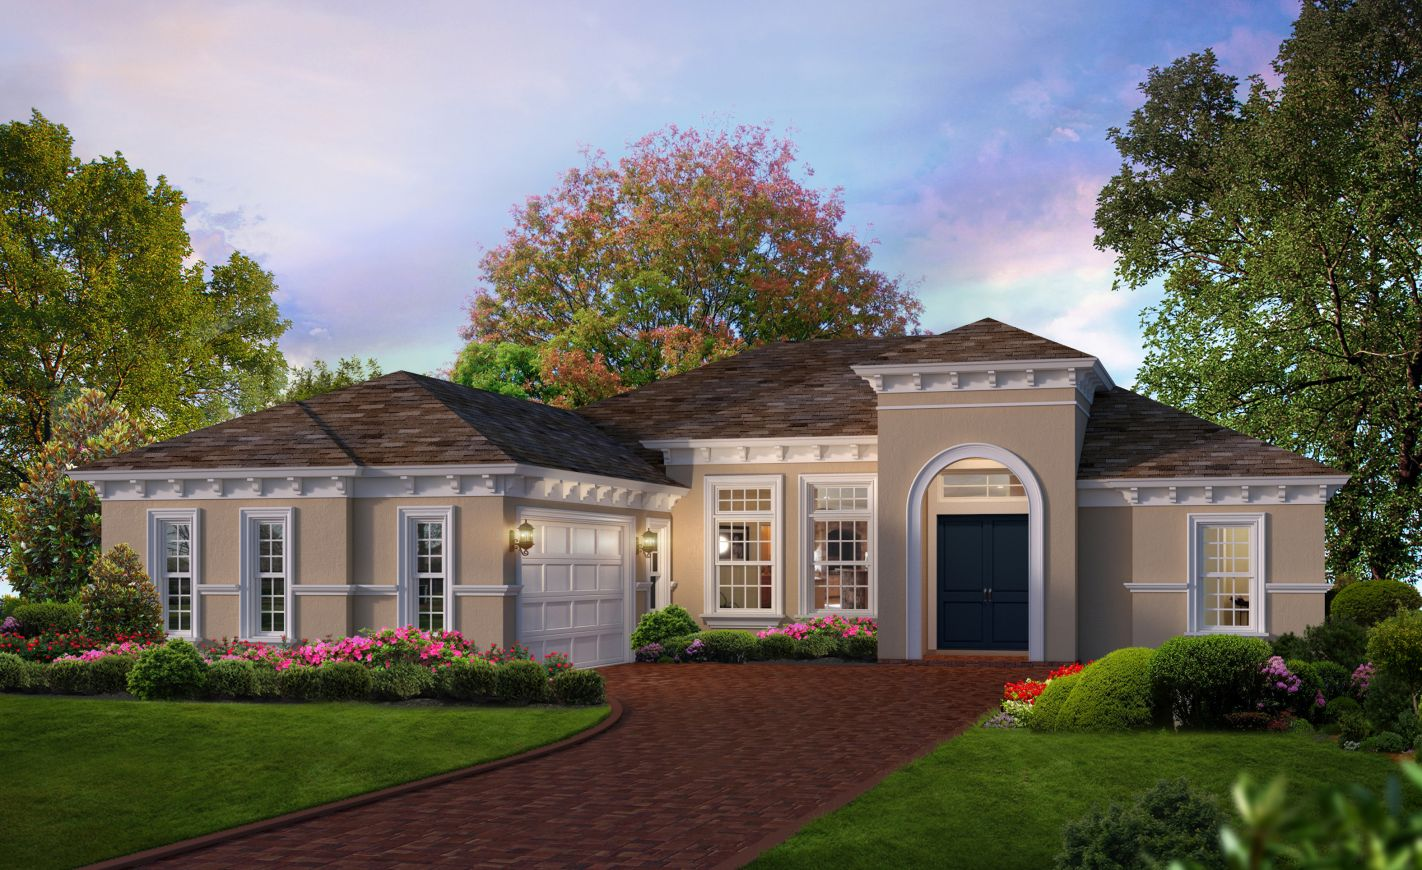 Jacksonville Homes for Sale - The Olivia at Tamaya